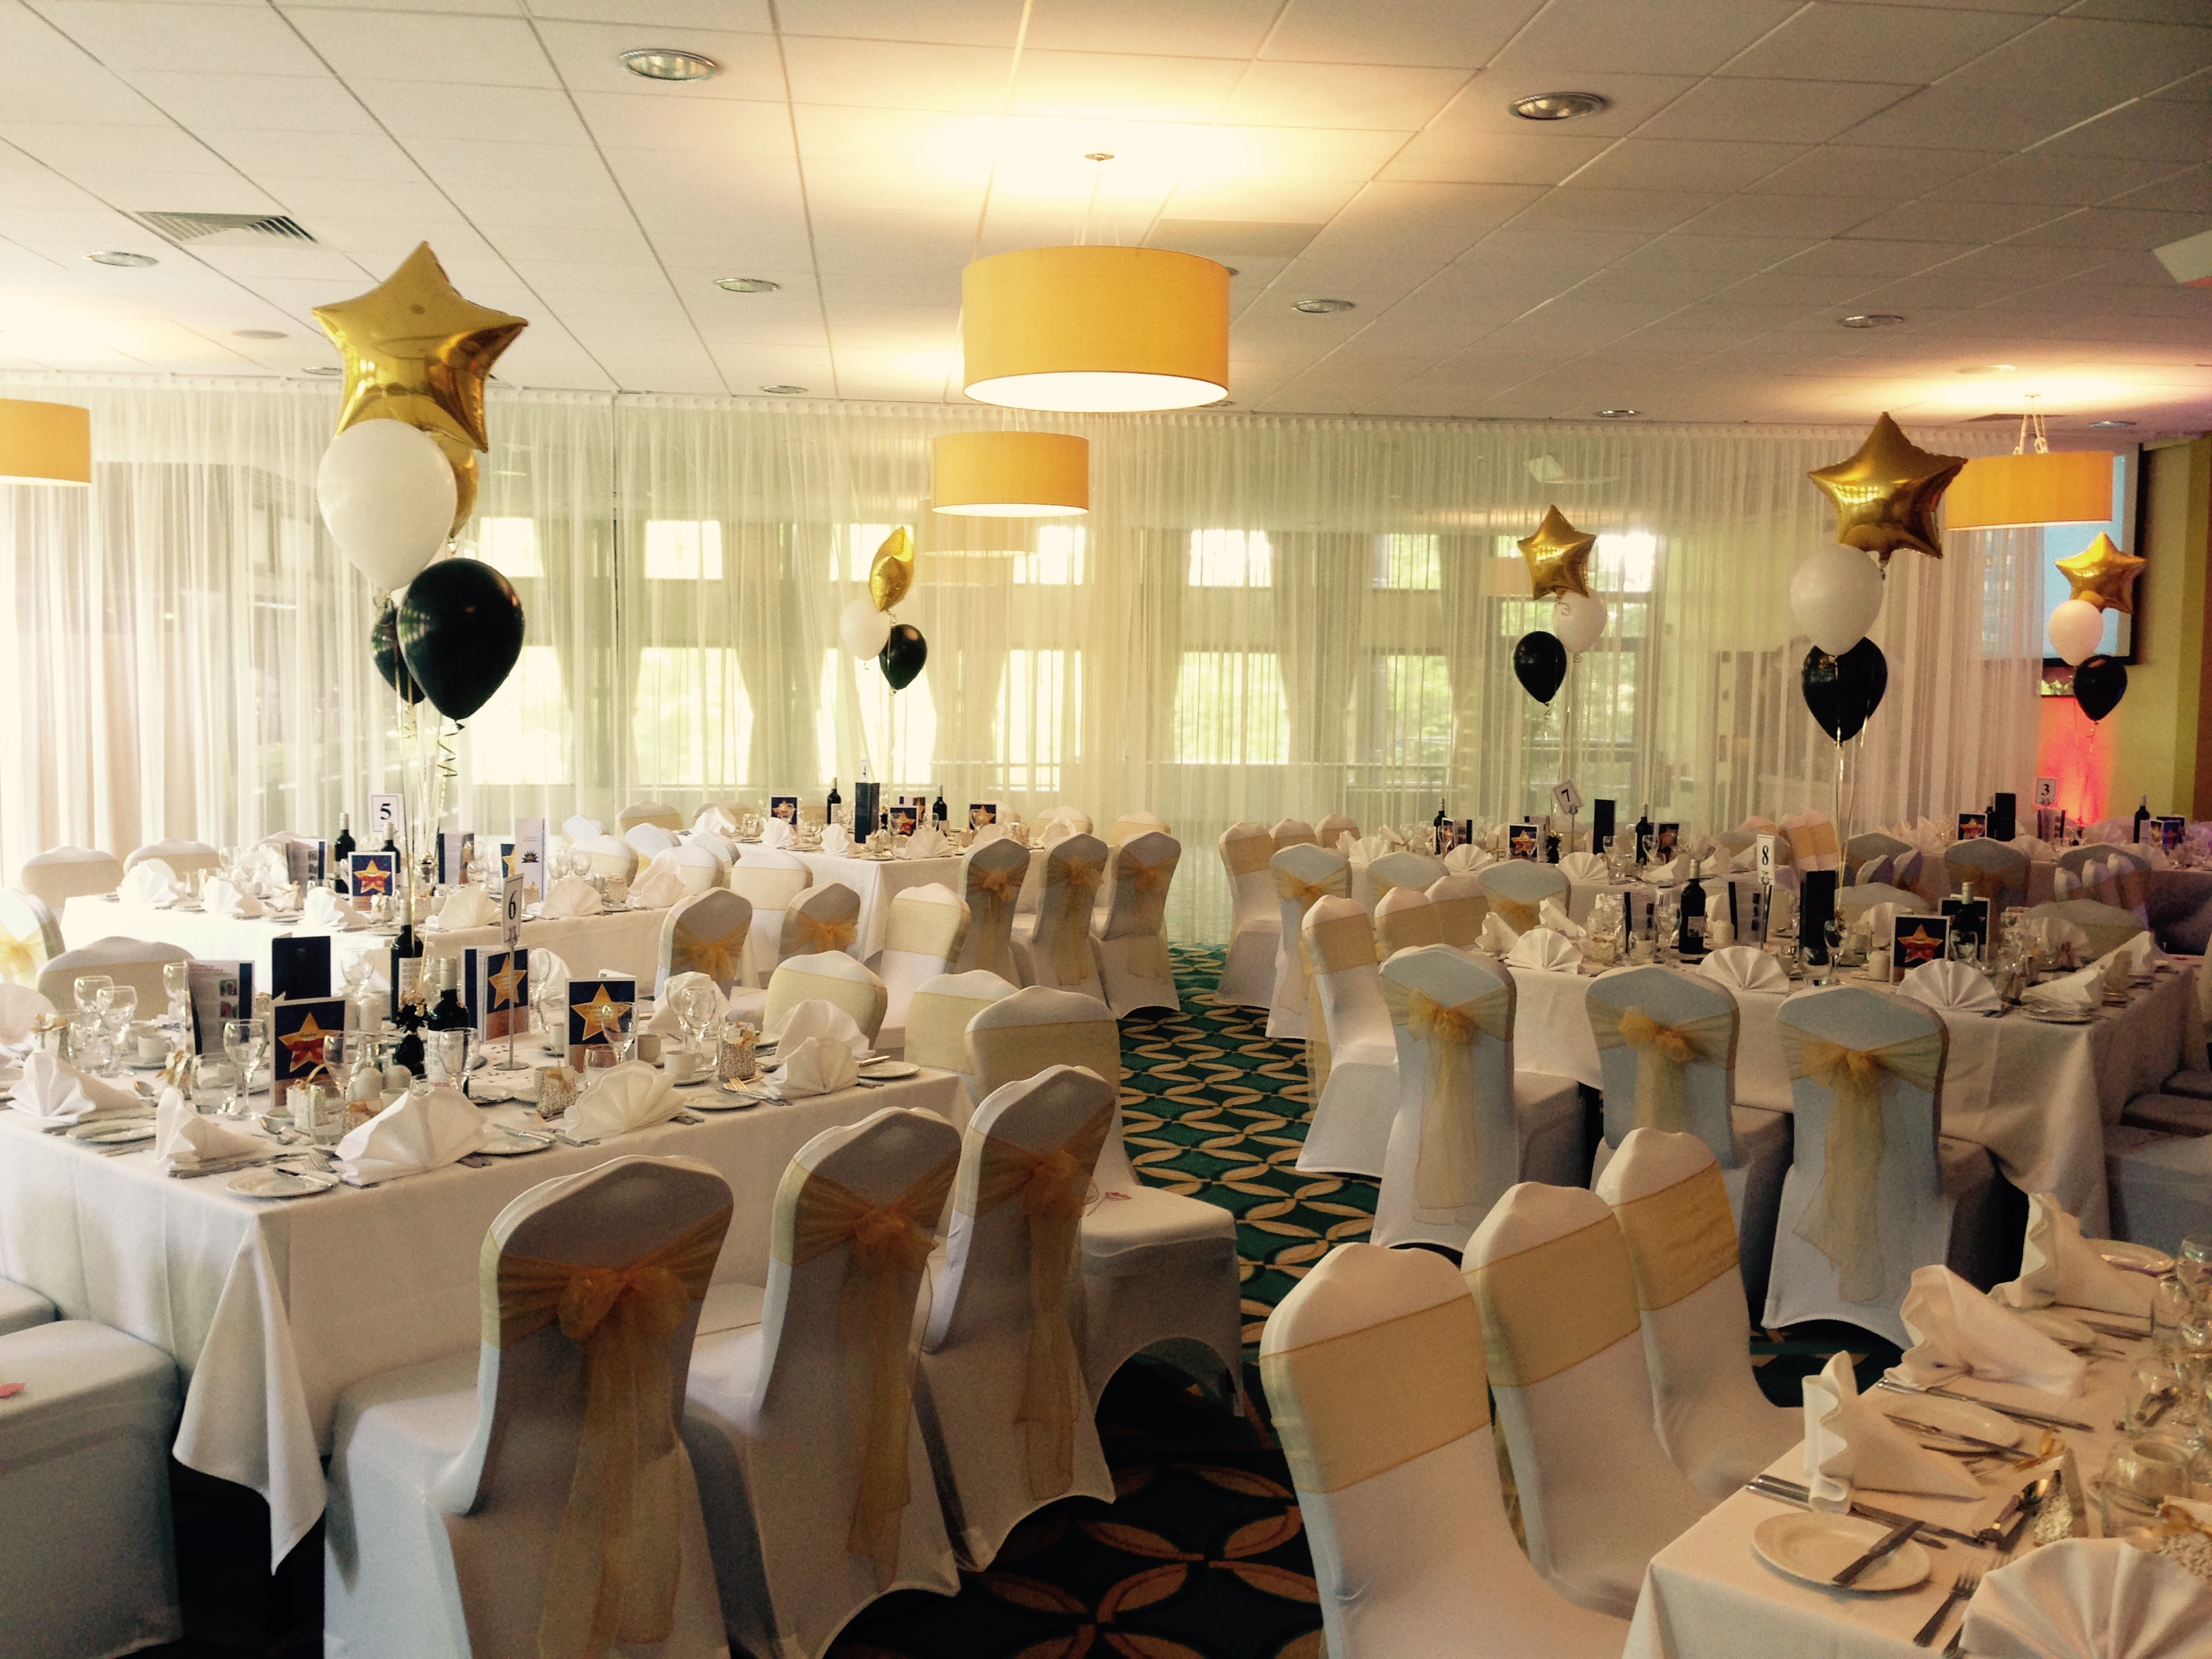 Conference Venue Weddings Keele University Conferences And Events ...